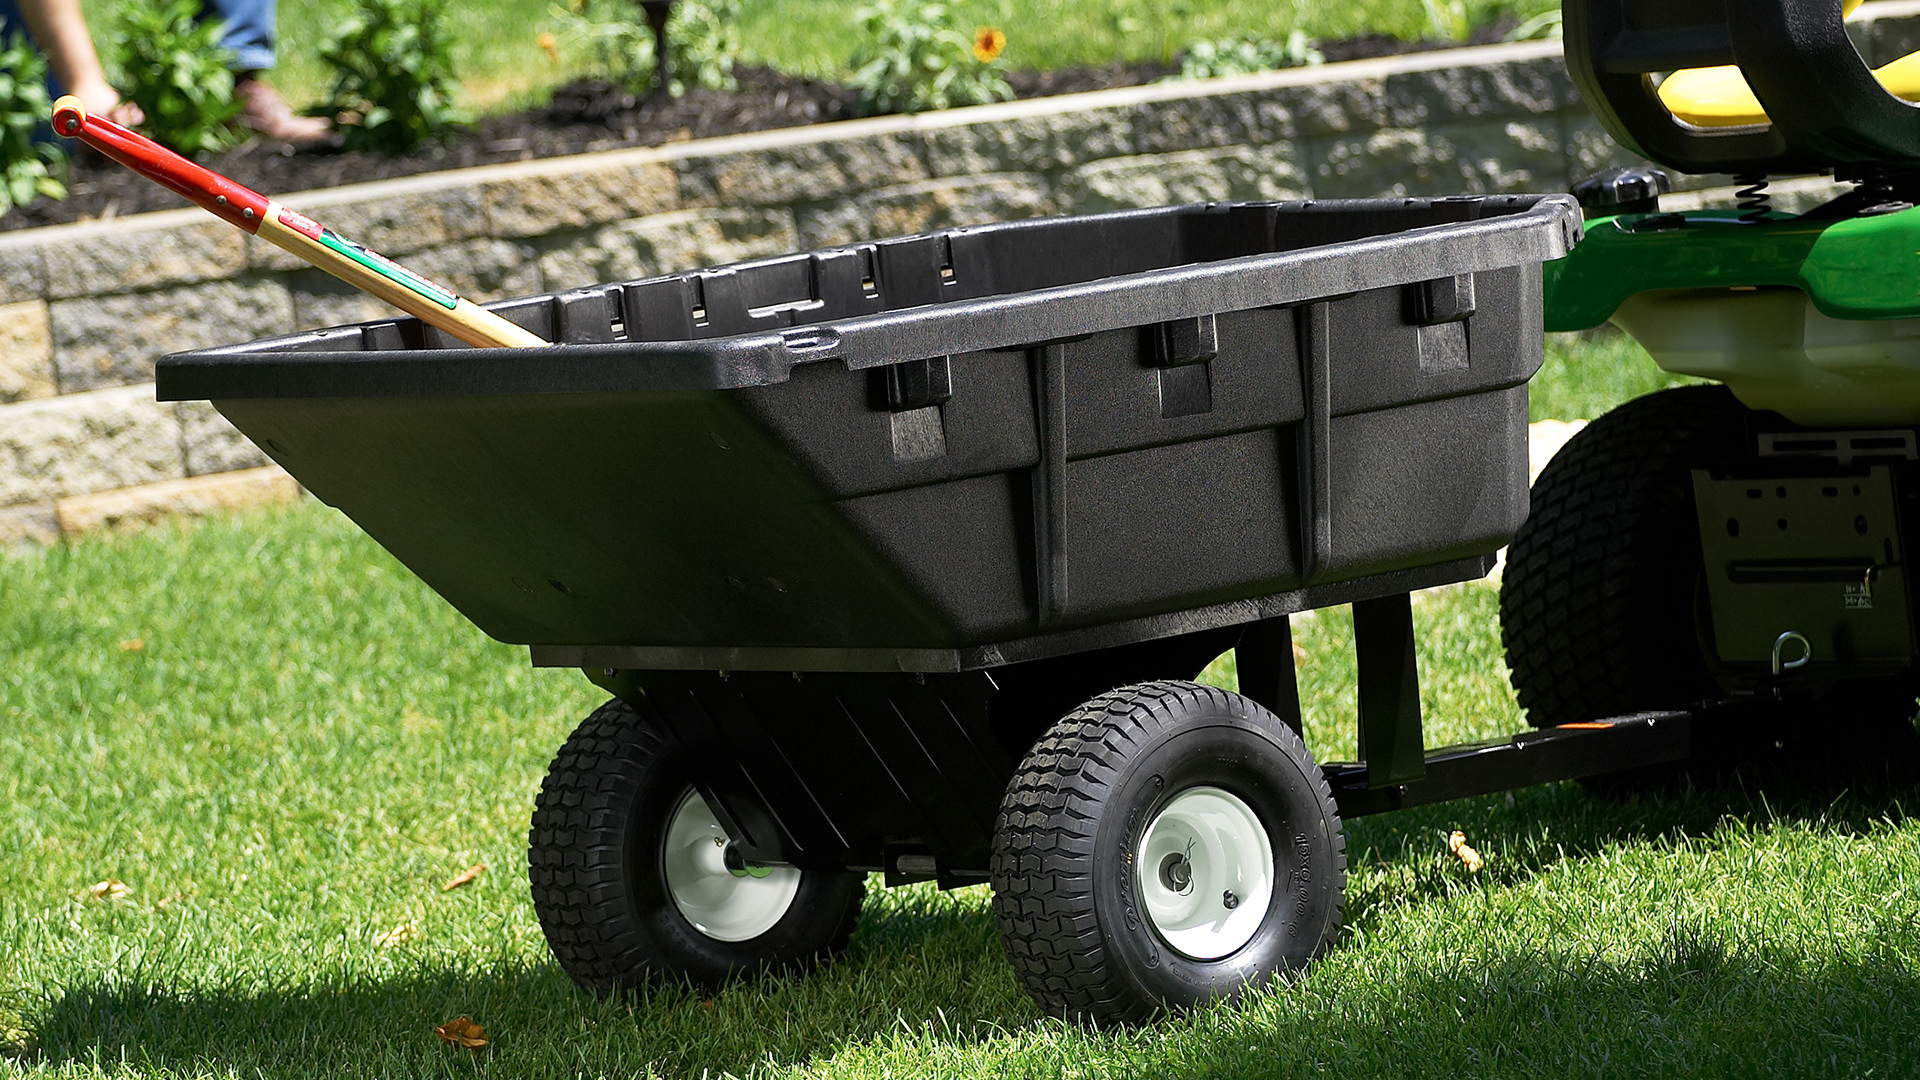 priority_designs_lawn_and_garden_cart_design_and_engineering_005